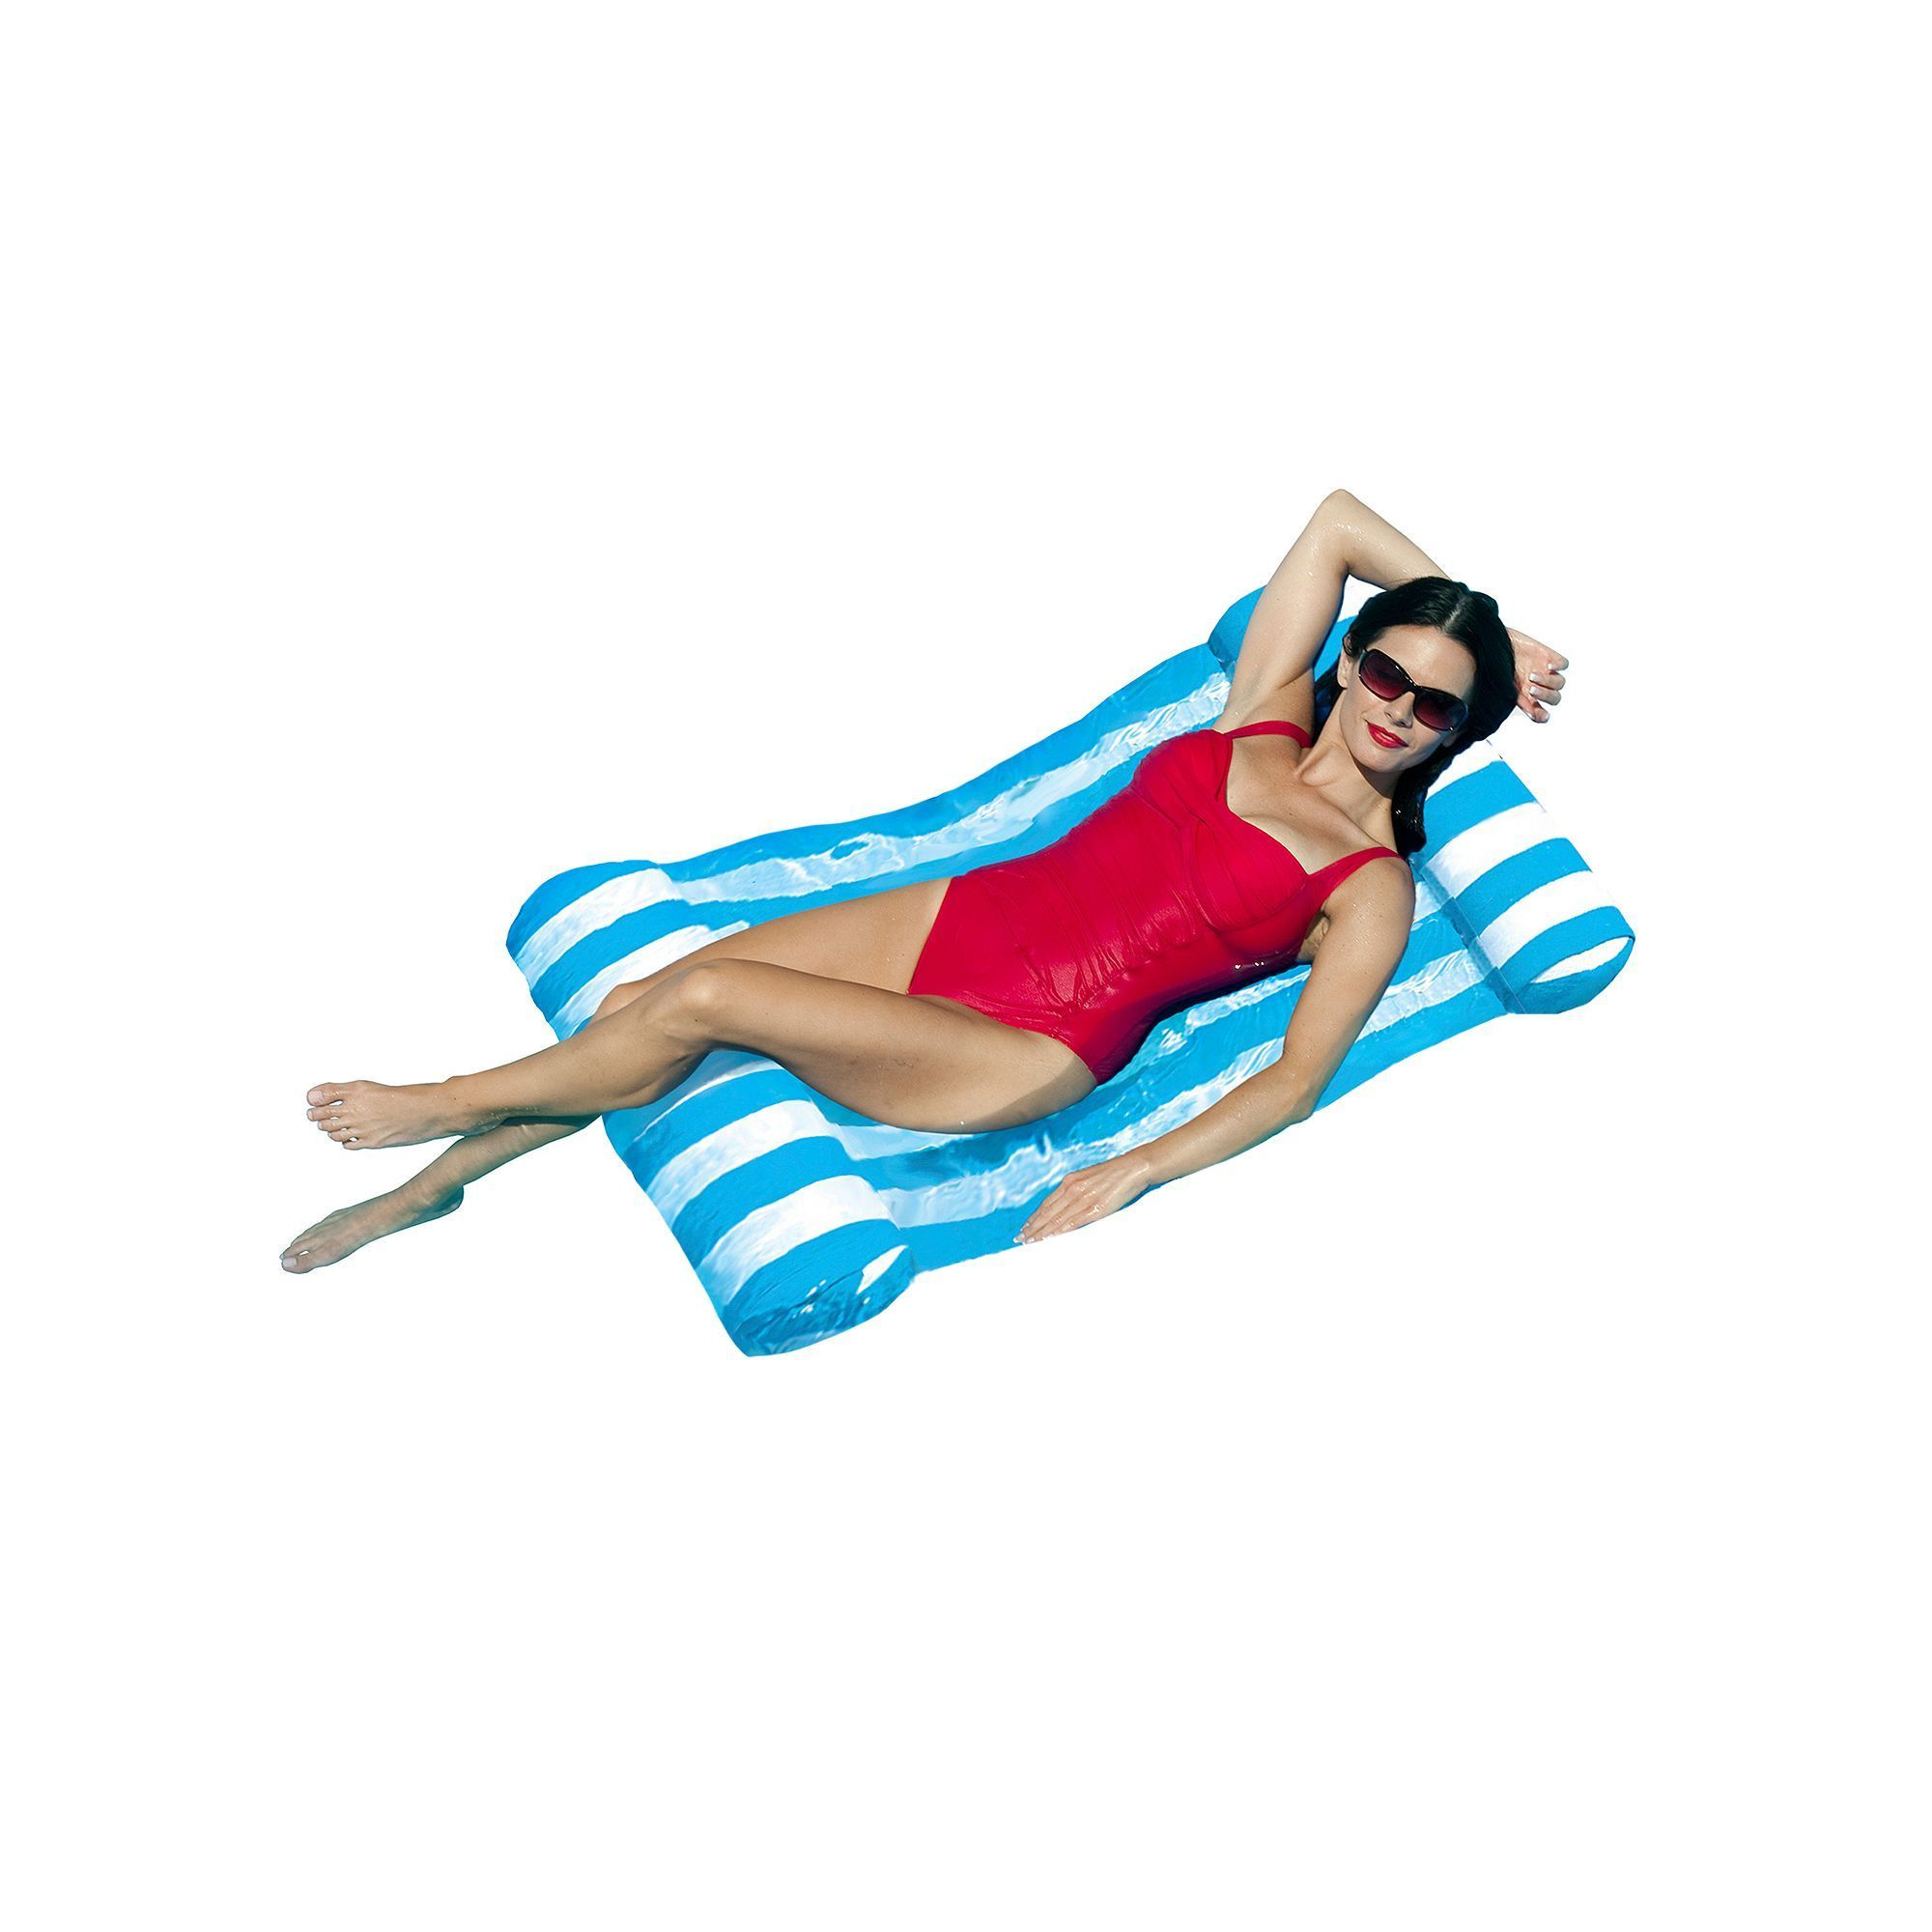 water lounging itm the large roomy tgokl poolmaster ebay hammock lounger xl for extra comfort